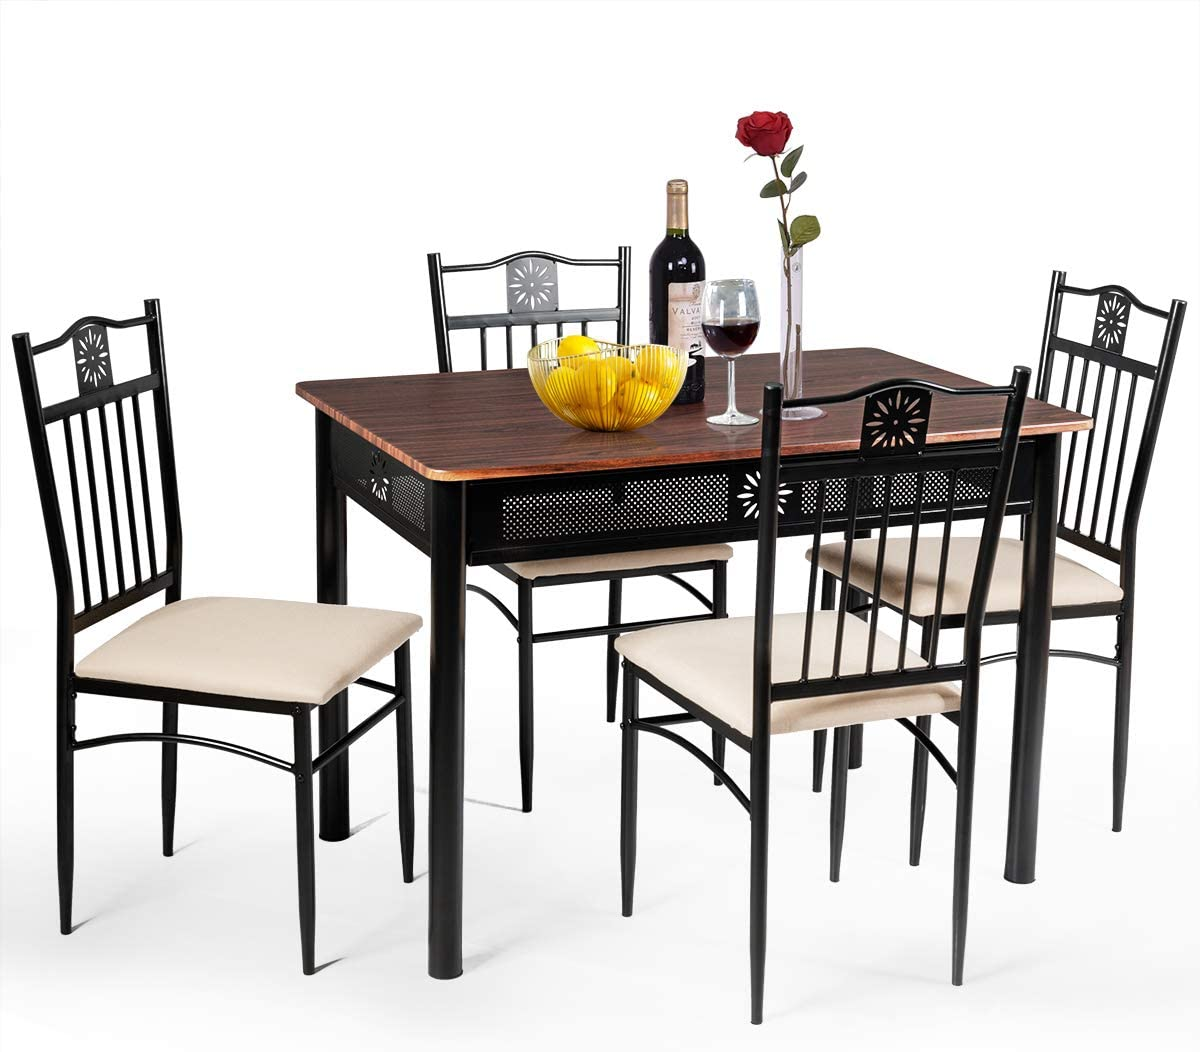 Tangkula 5 Pieces Dining Table and Chairs Set, Vintage Retro Wood Top Metal Frame Padded Seat Dining Table Set Home Kitchen Dining Room Furniture Brown